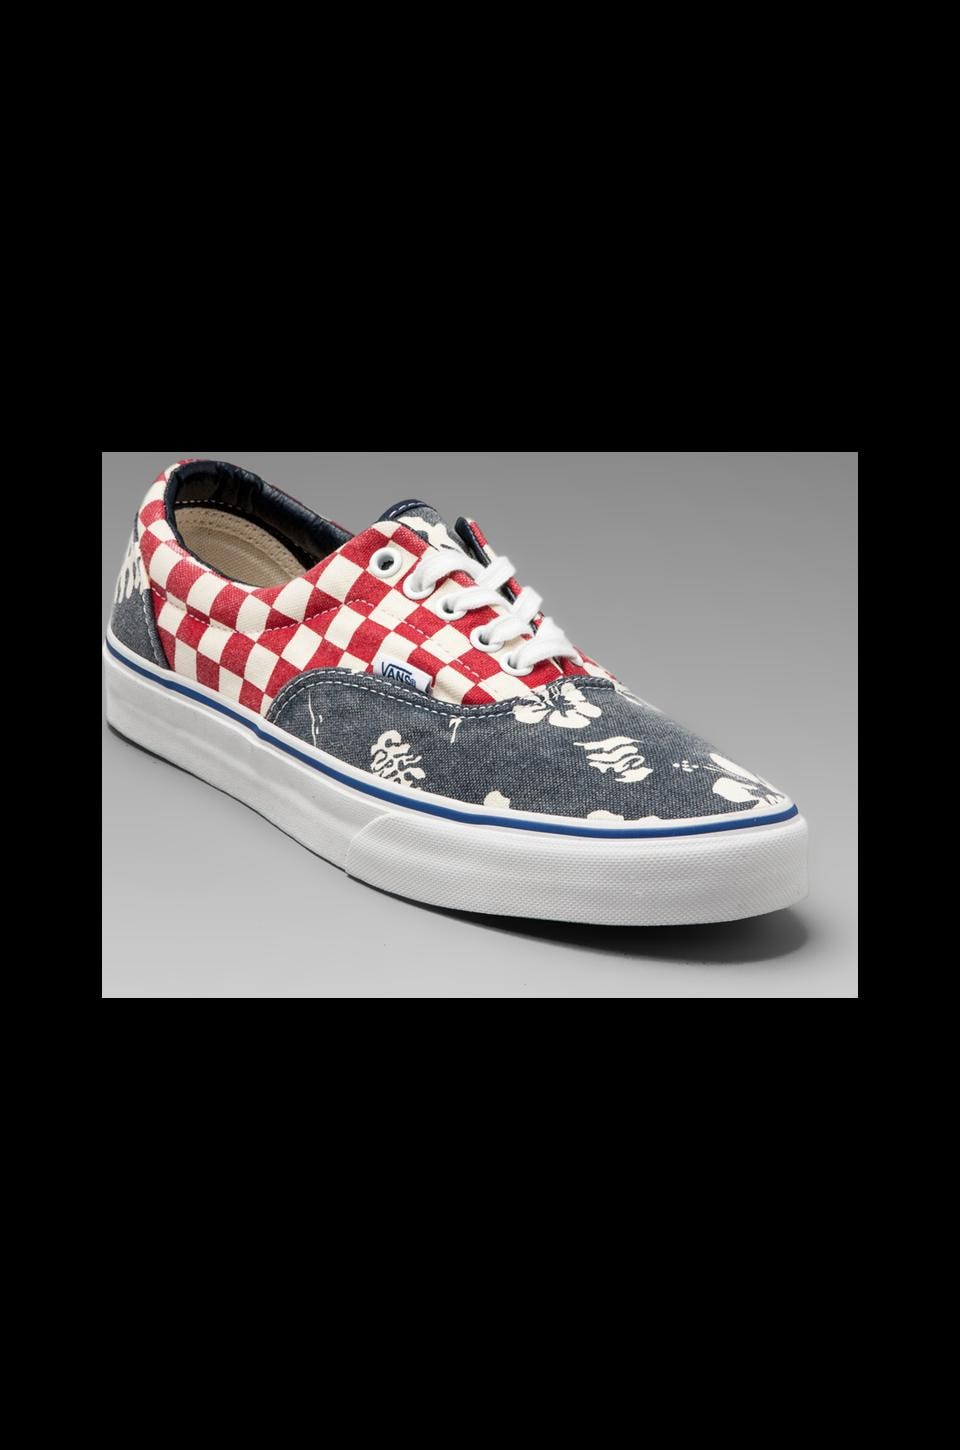 Vans Era Van Doren in Aloha/Checker